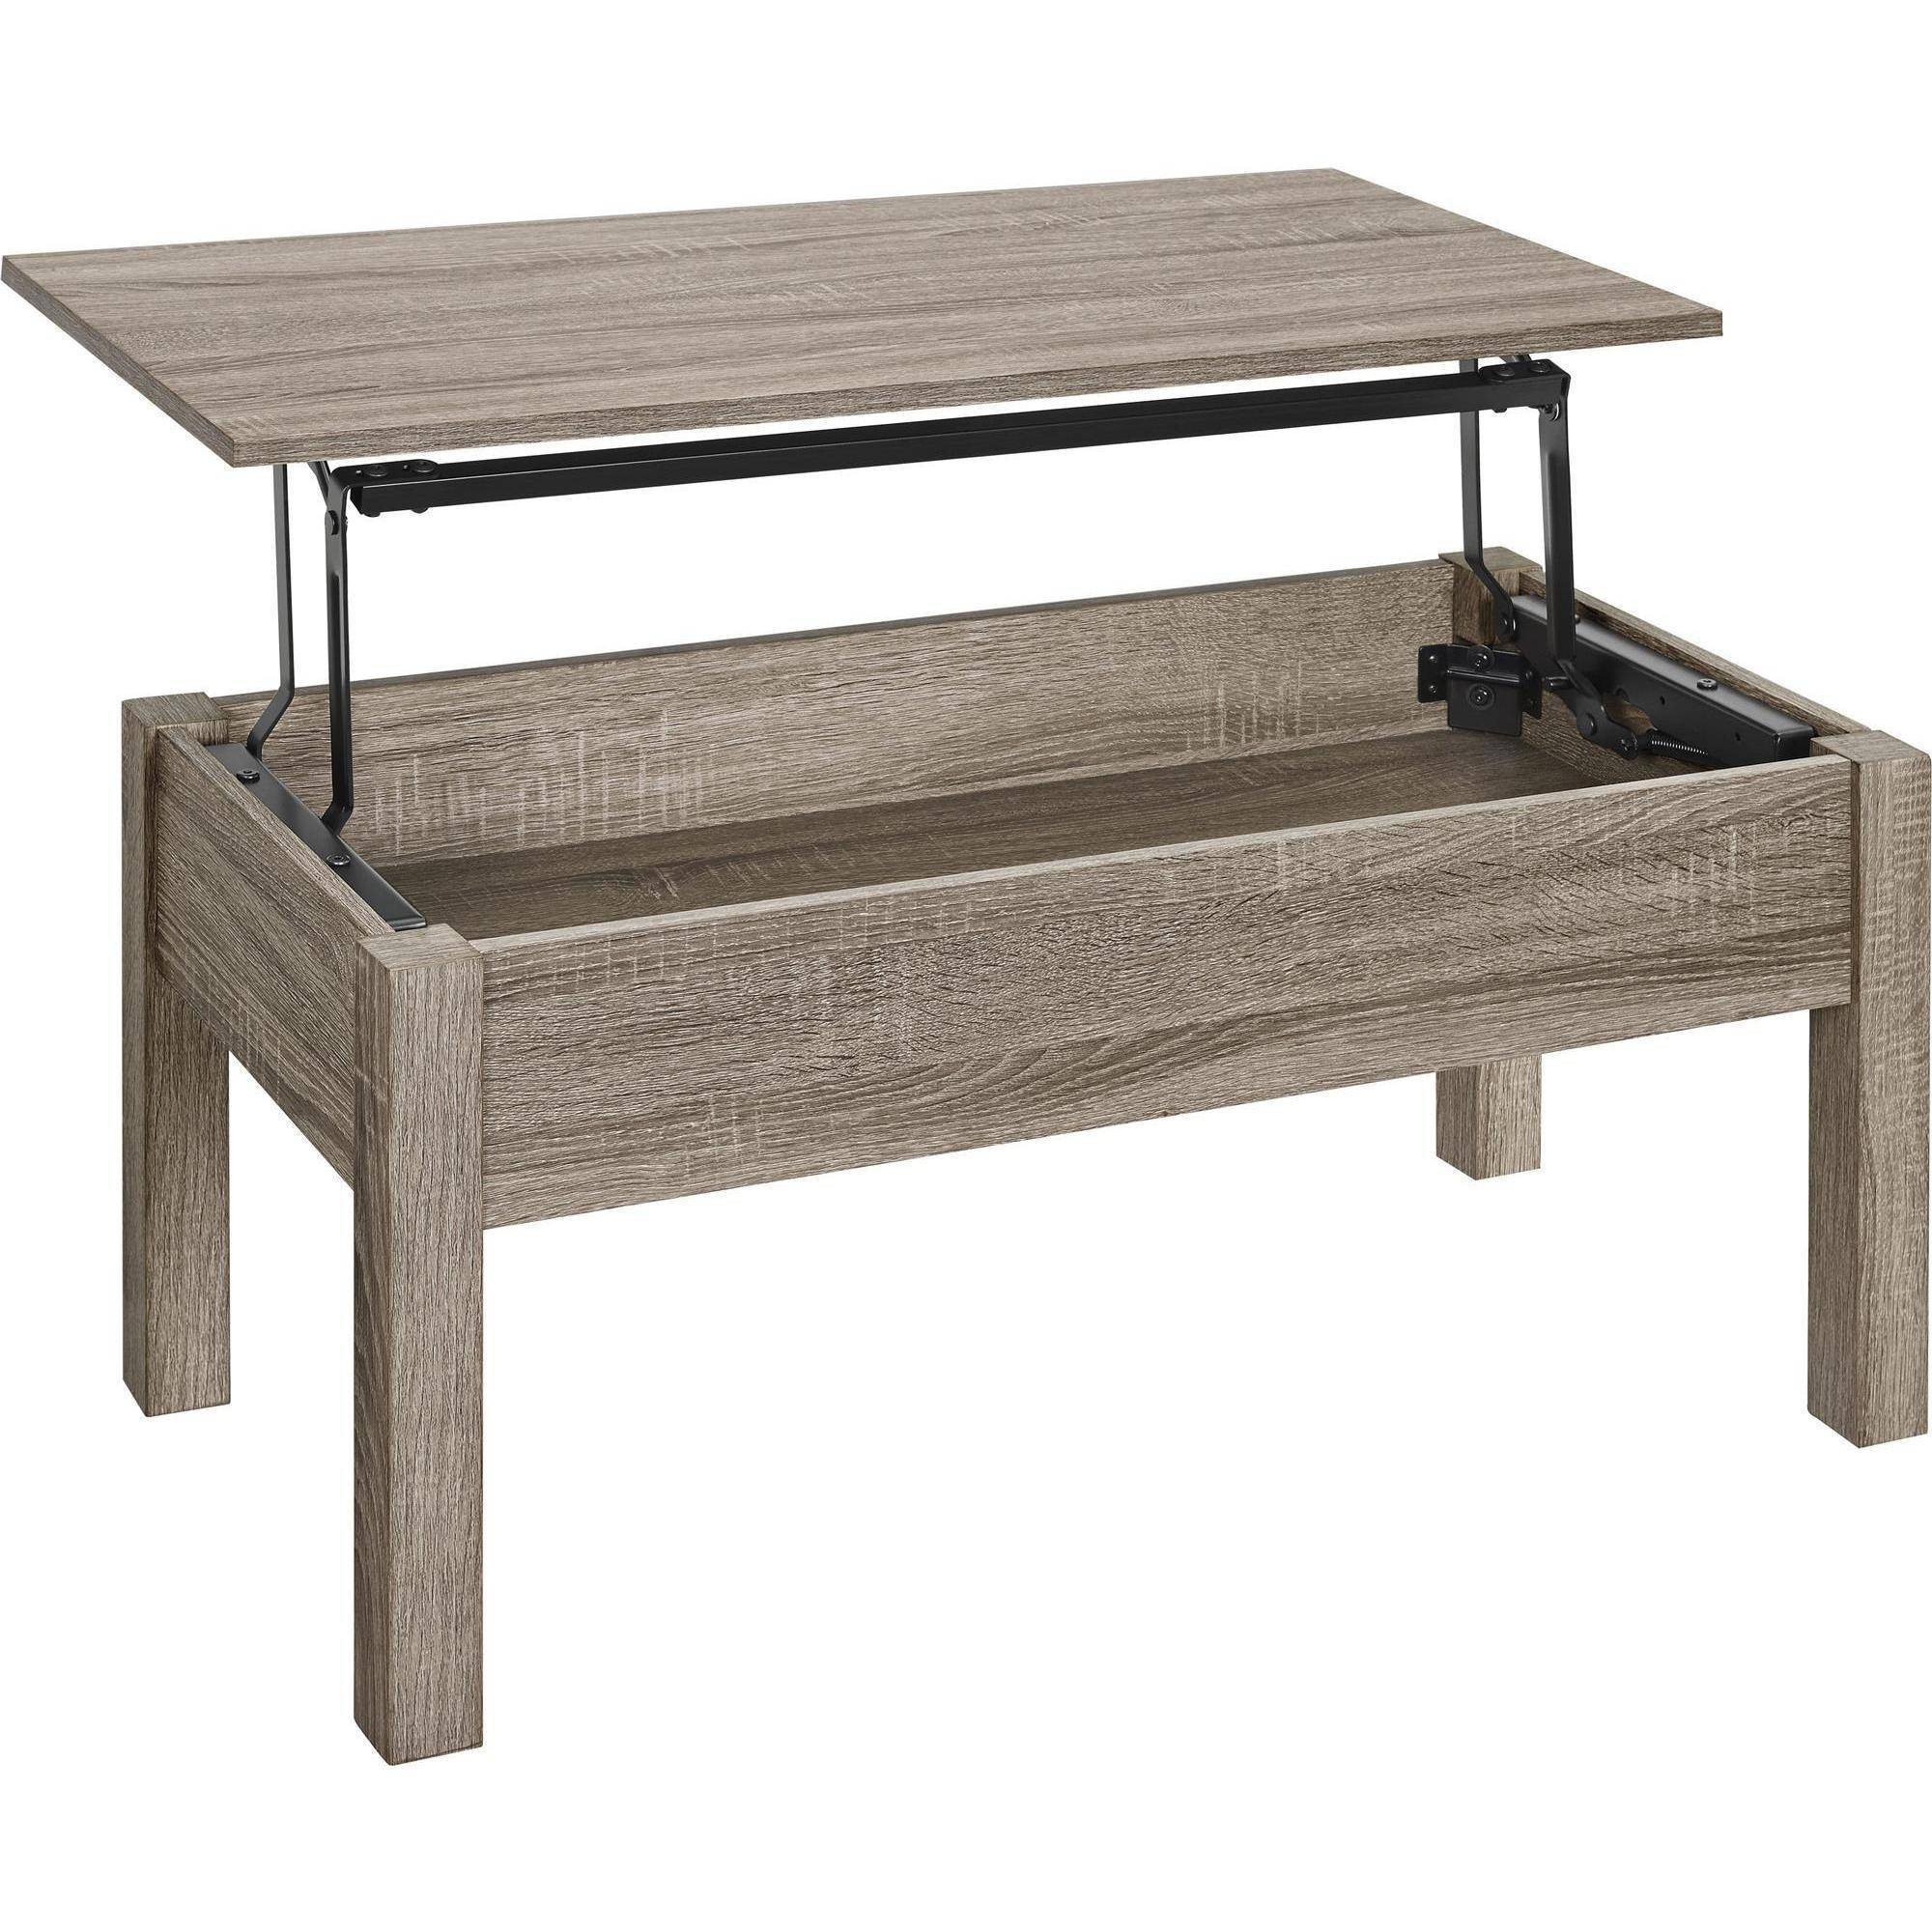 Image Gallery Lift Top Coffee Table